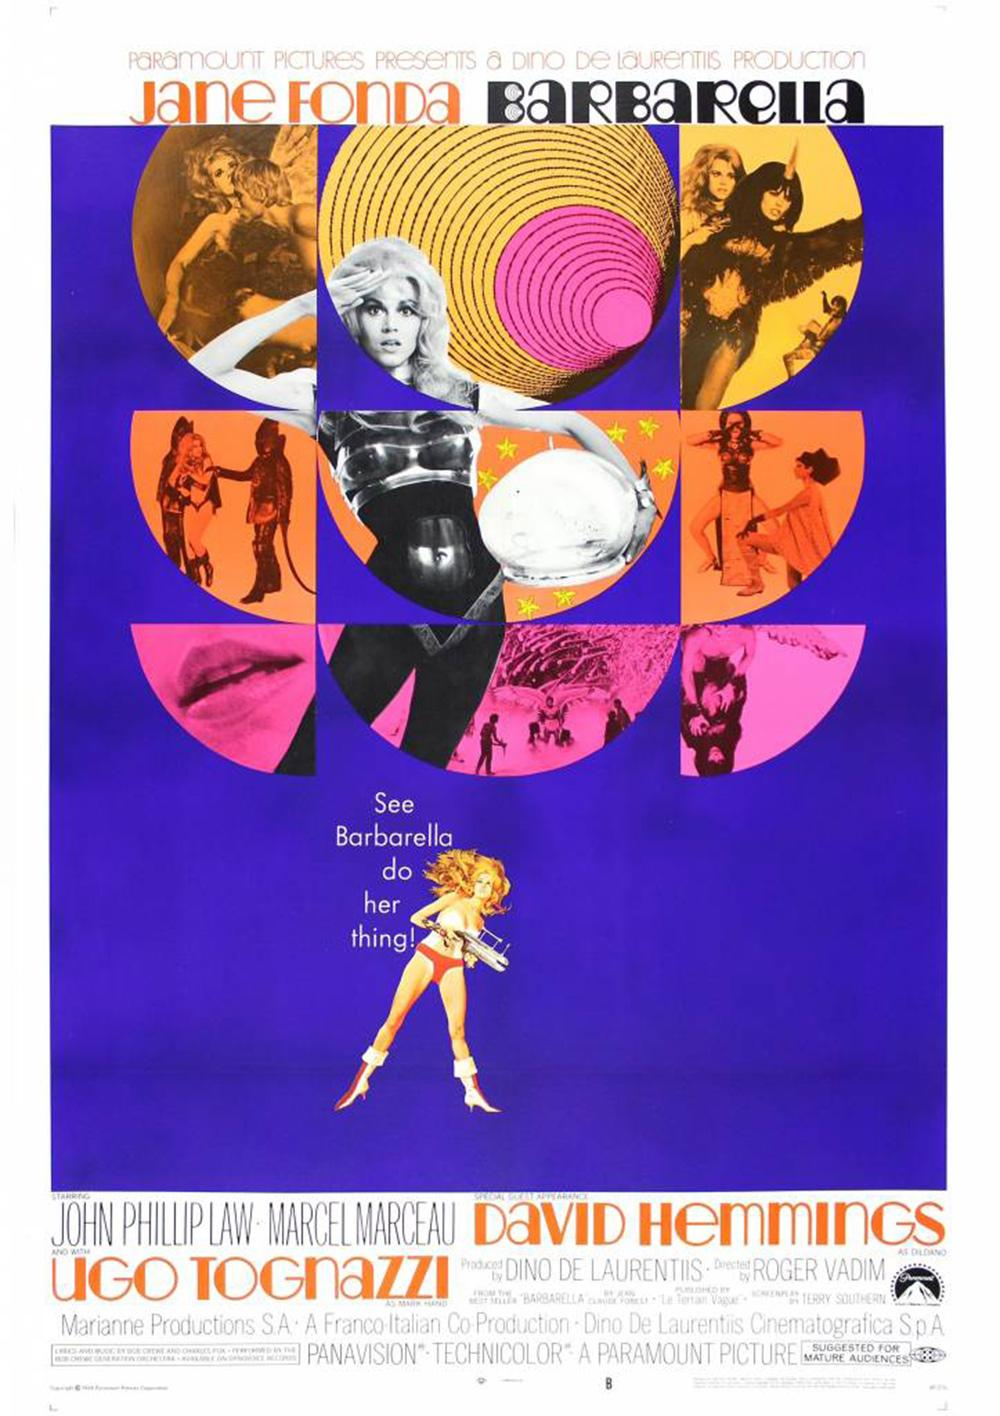 Film poster for Barbarella by Bill Gold